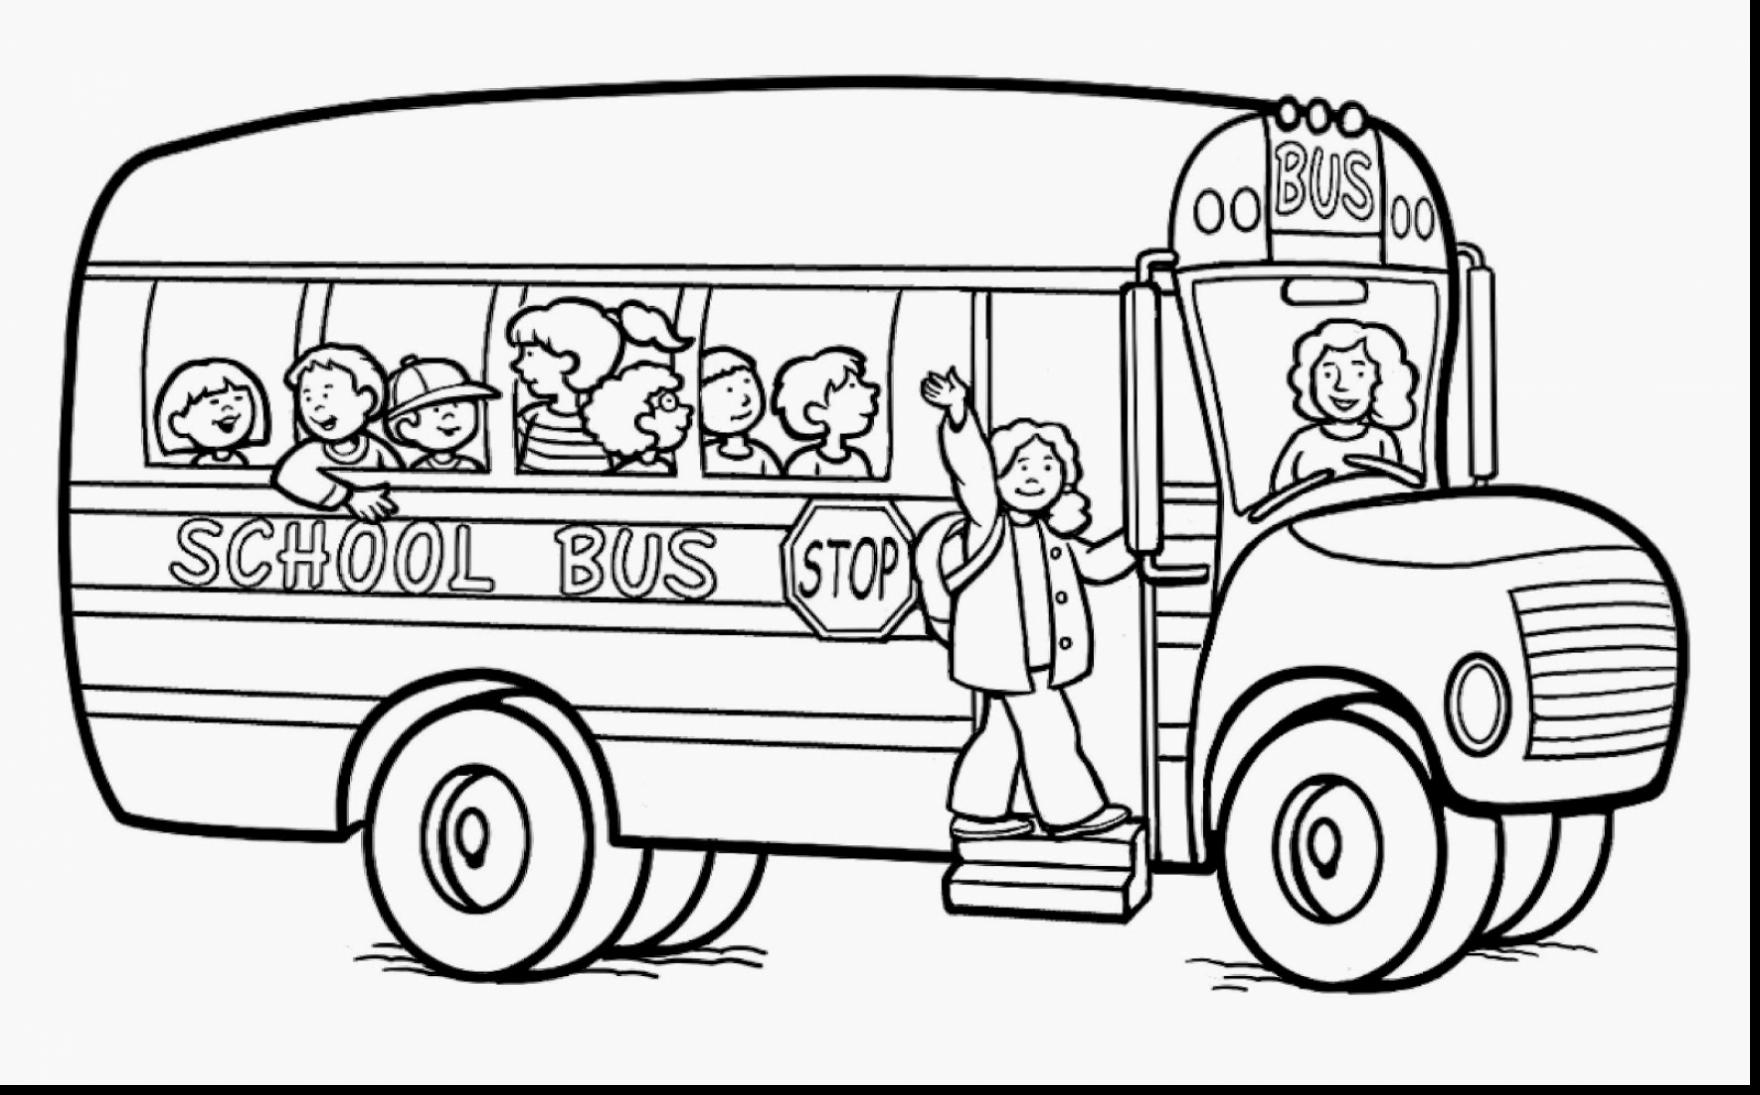 Magic School Bus Drawing At Getdrawings